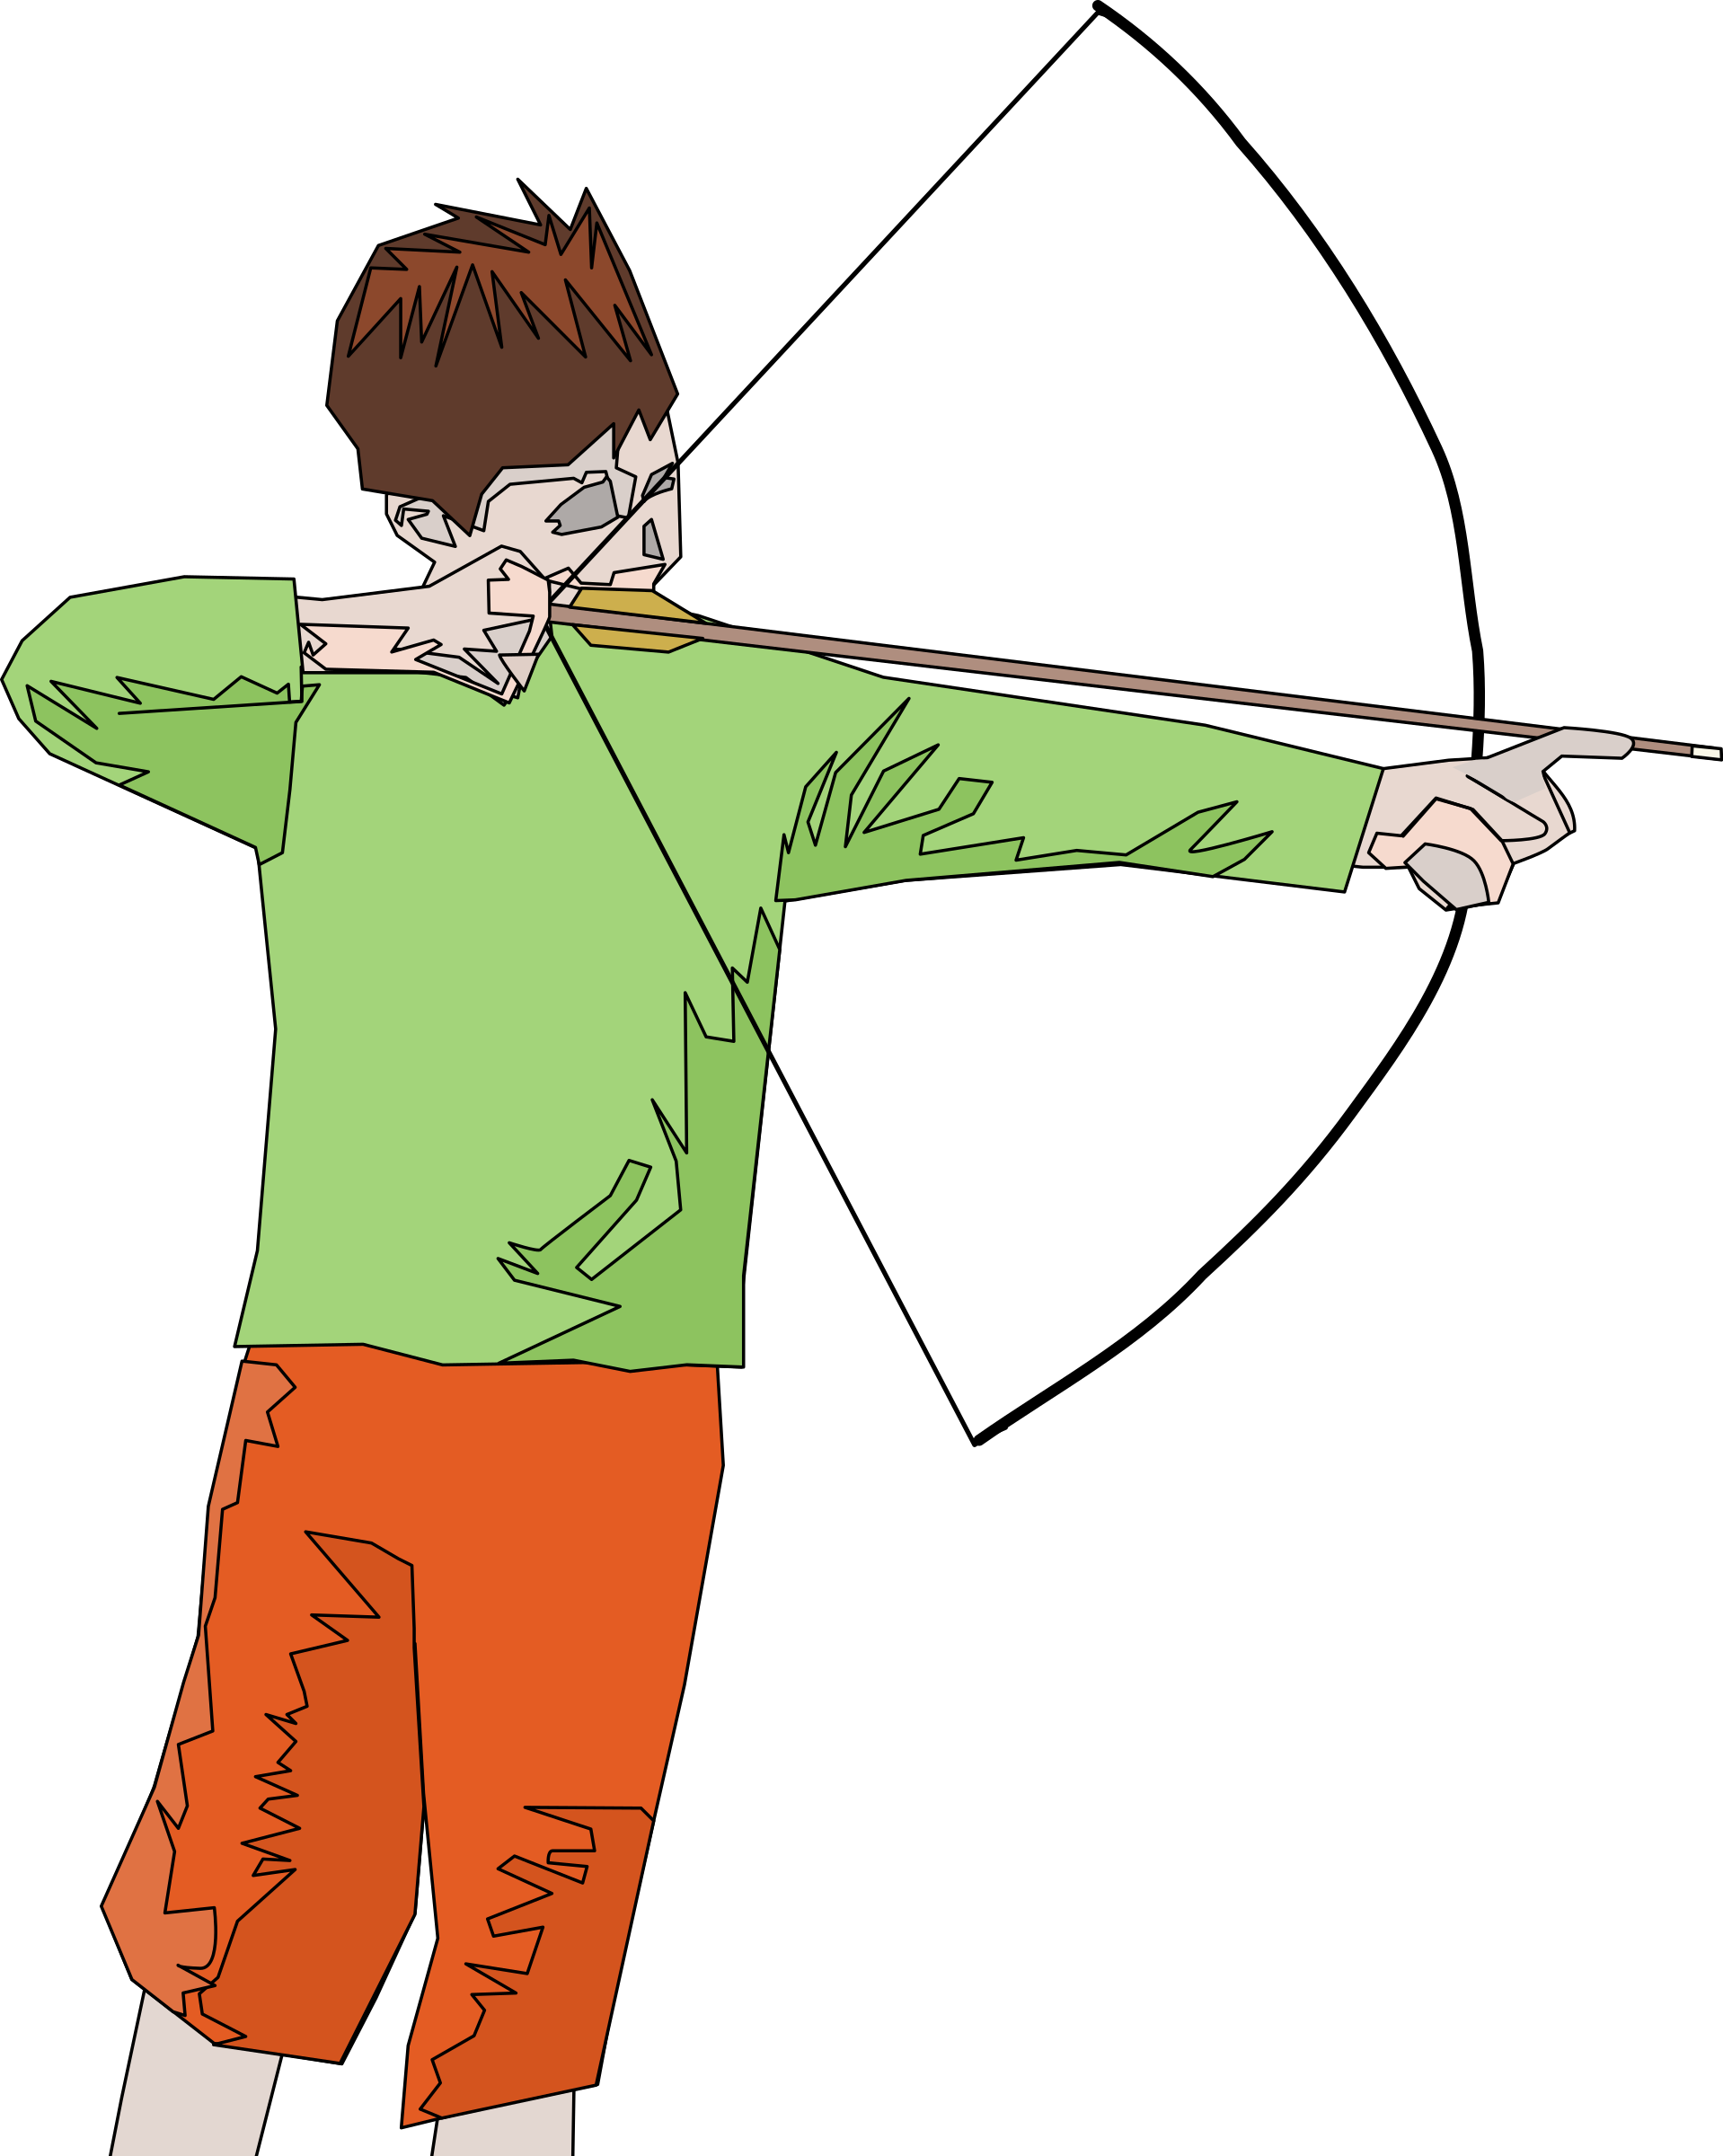 Archery clipart abstract. Archer big image png